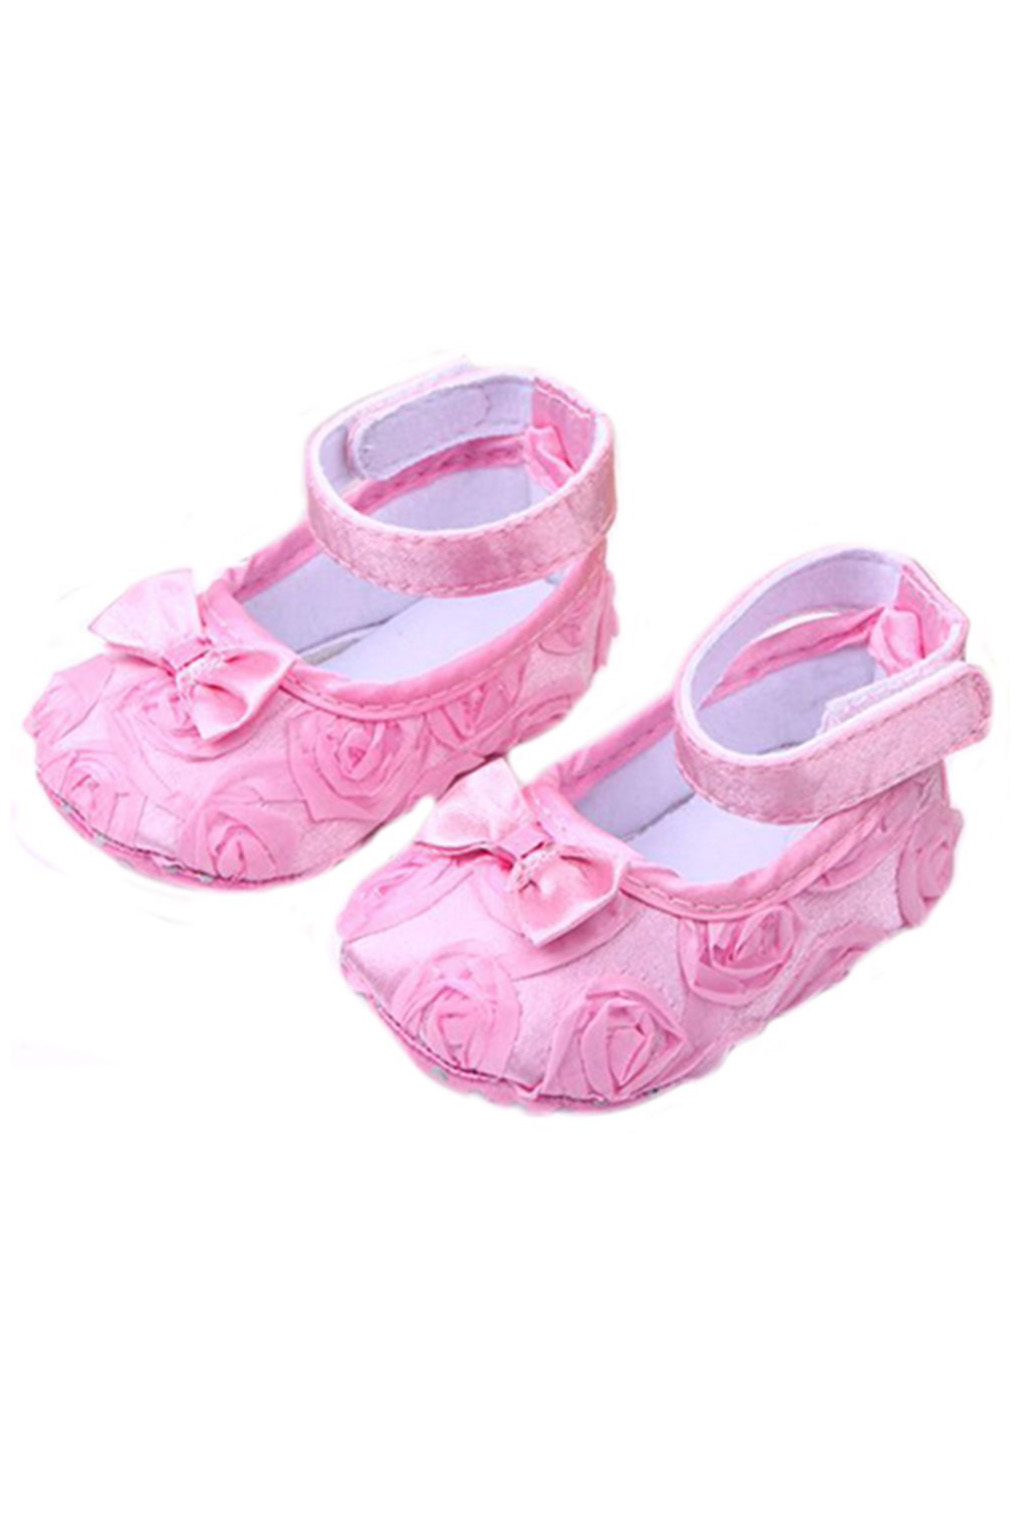 ABWE Best Sale Baby Girl Comfortable AntiSlip Princess Toddler Shoes (0-6 month, Pink)